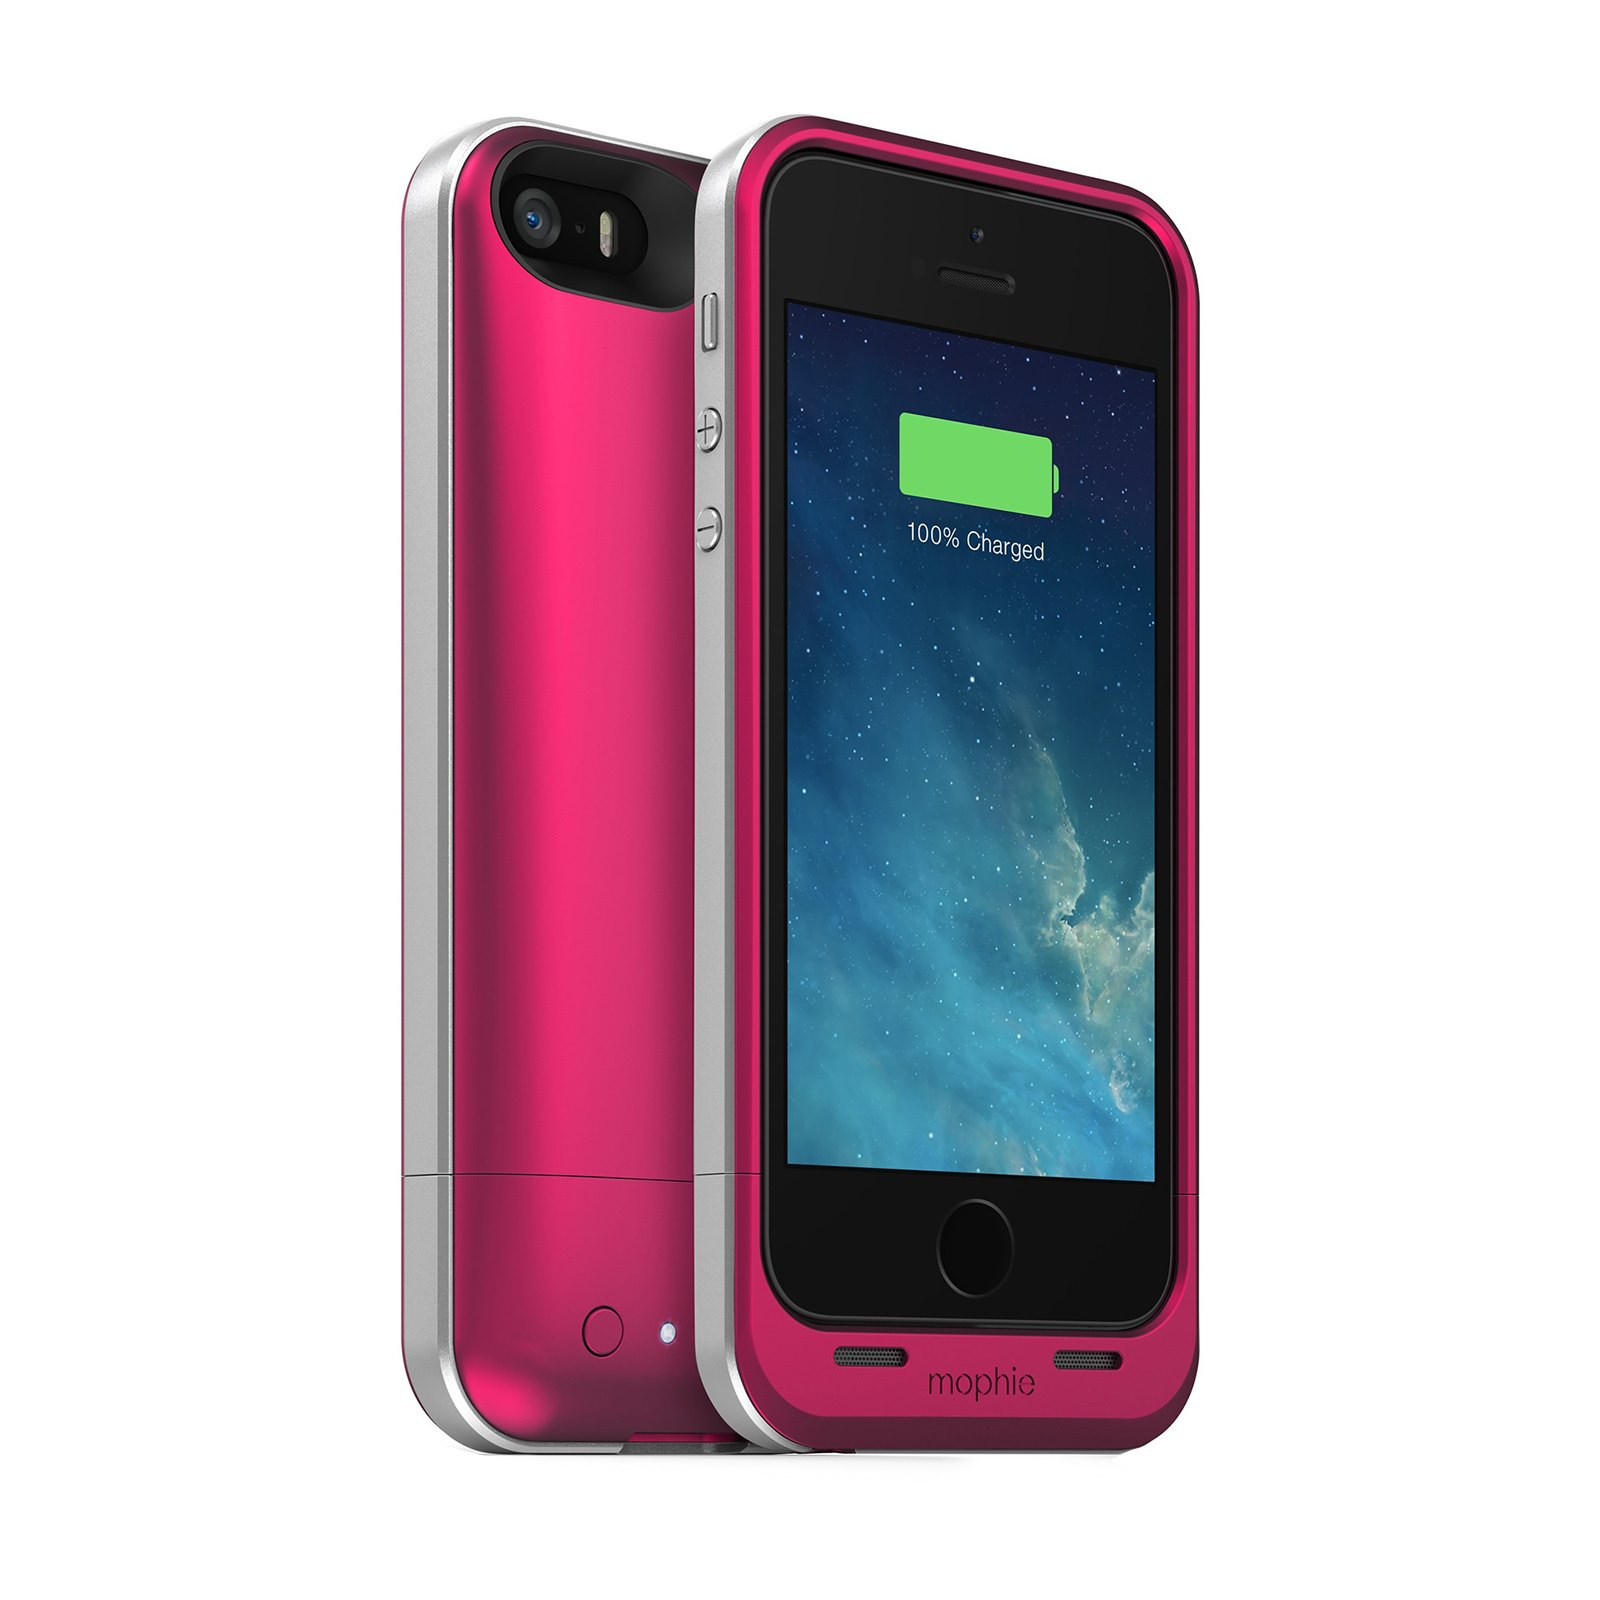 mophie juice pack air protective battery charger case for iphone 5 se 5s 5 ebay. Black Bedroom Furniture Sets. Home Design Ideas